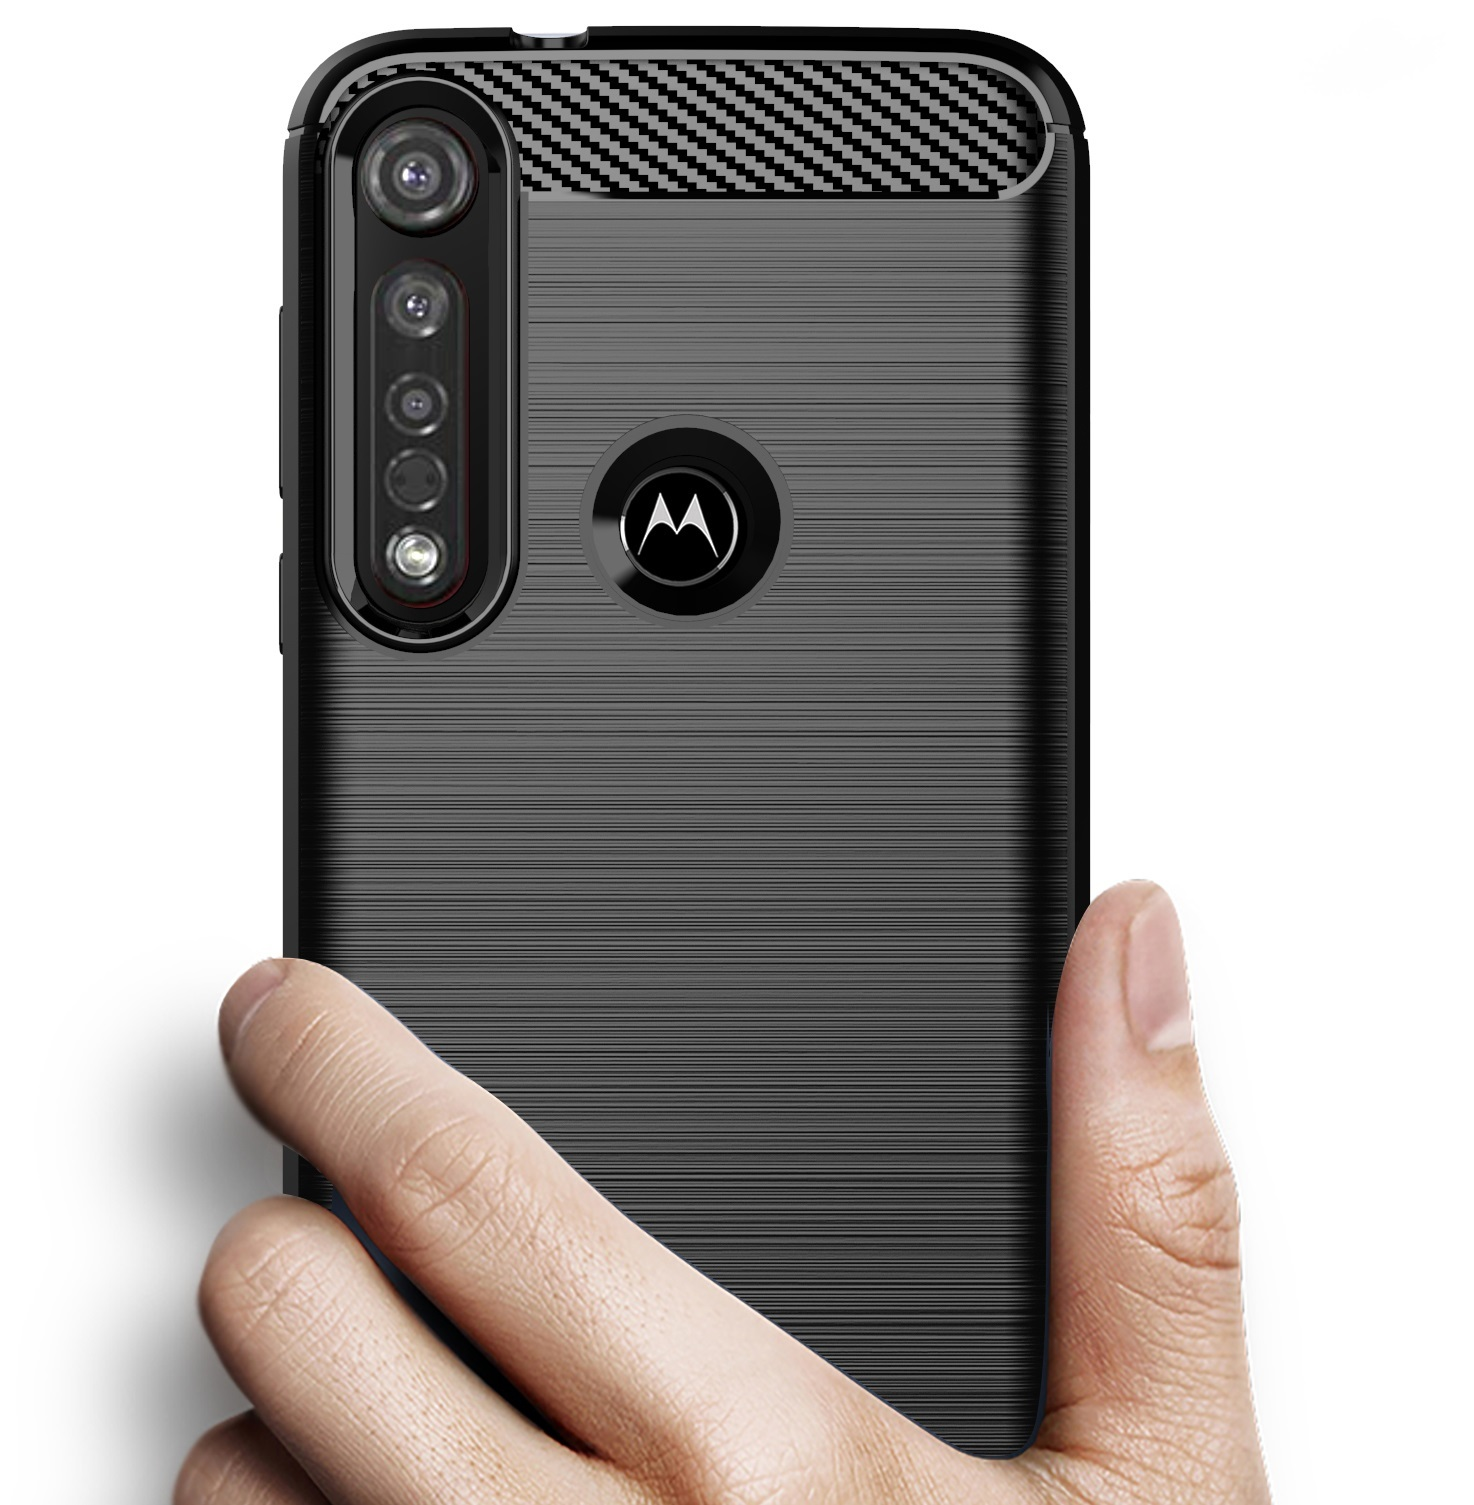 Чехол Motorola Moto G8 plus цвет Black (черный), серия Carbon, Caseport